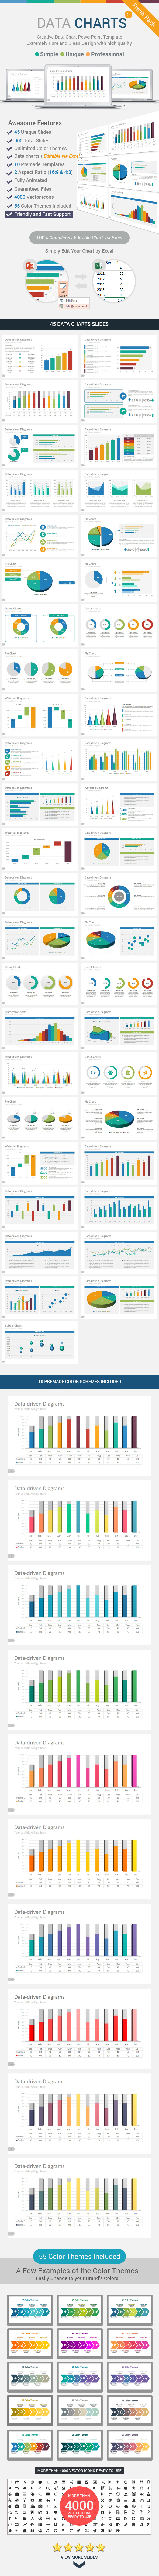 Data Charts 2 PowerPoint Presentation Template - Finance PowerPoint Templates